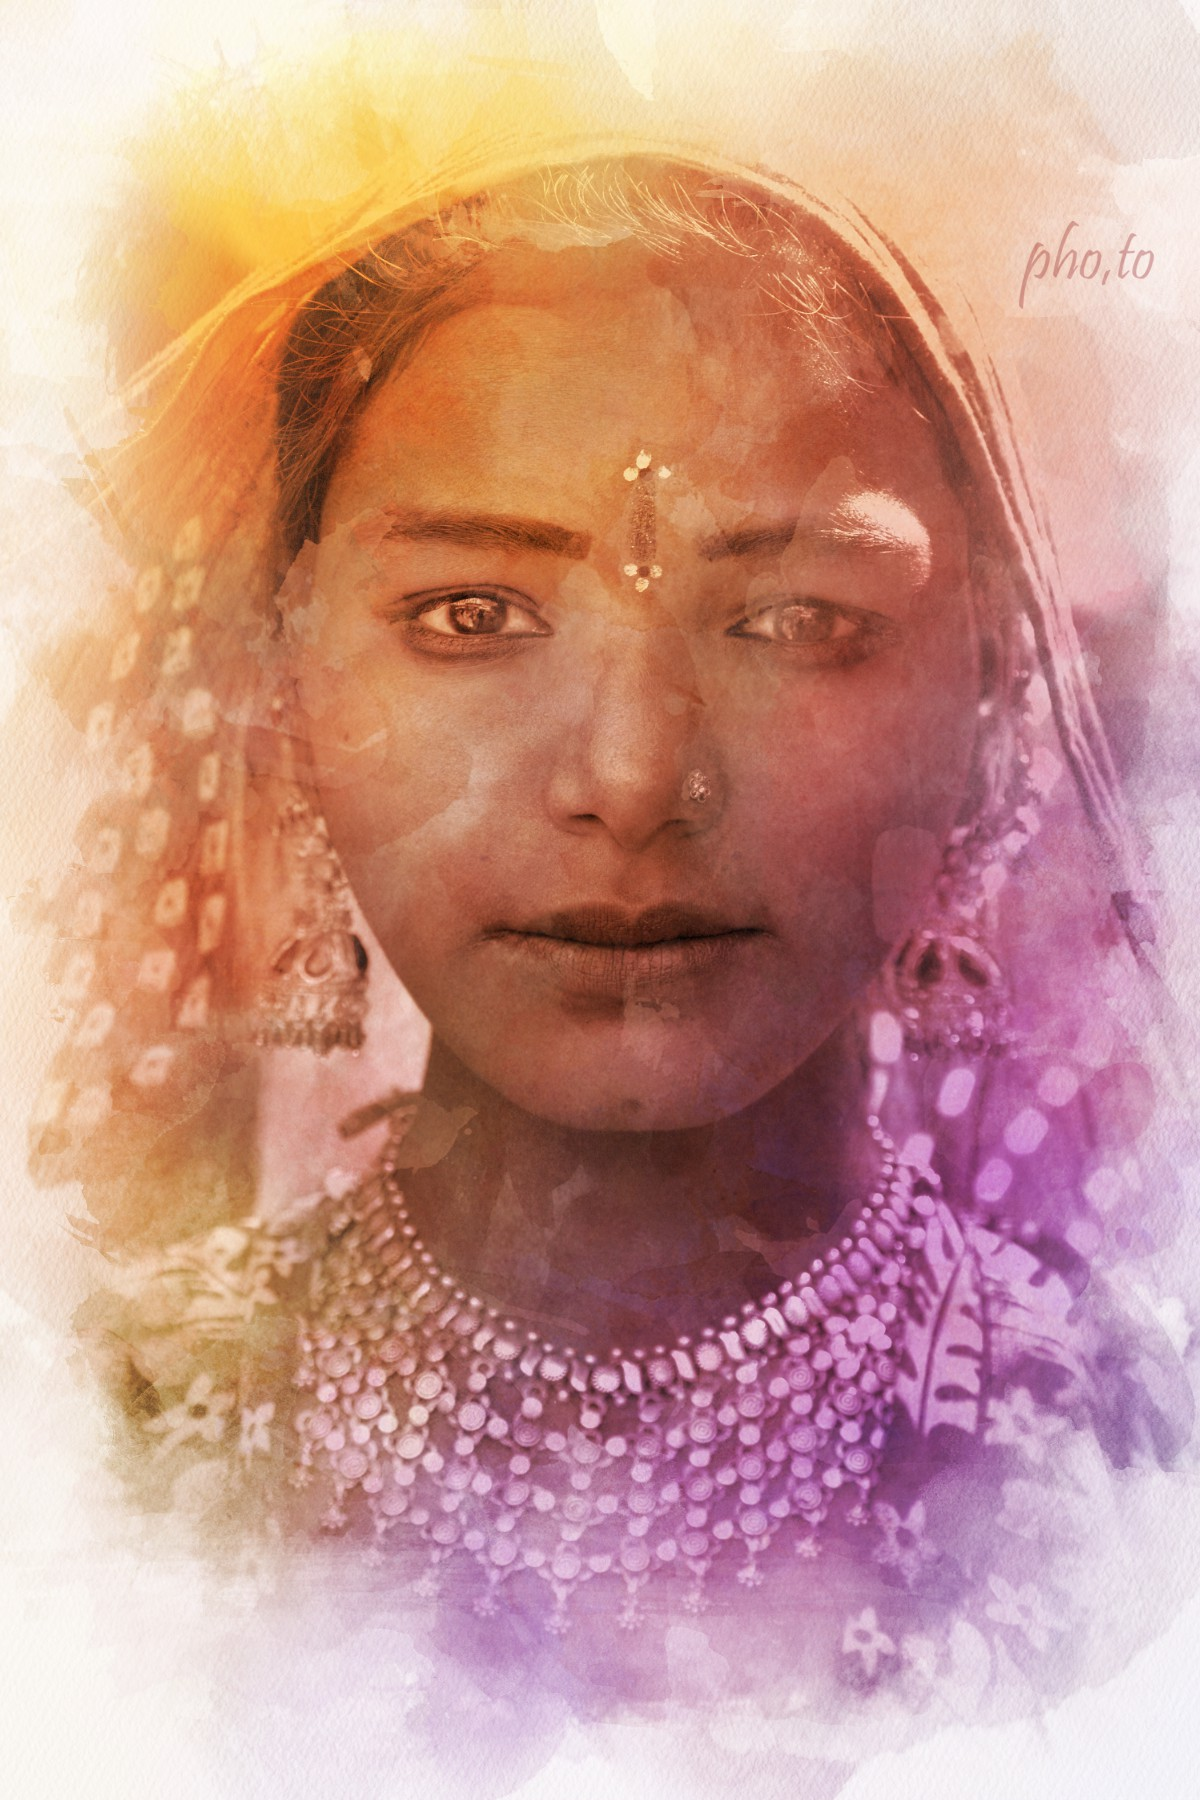 Watercolor photo effect applied to a photo of an indian girl.